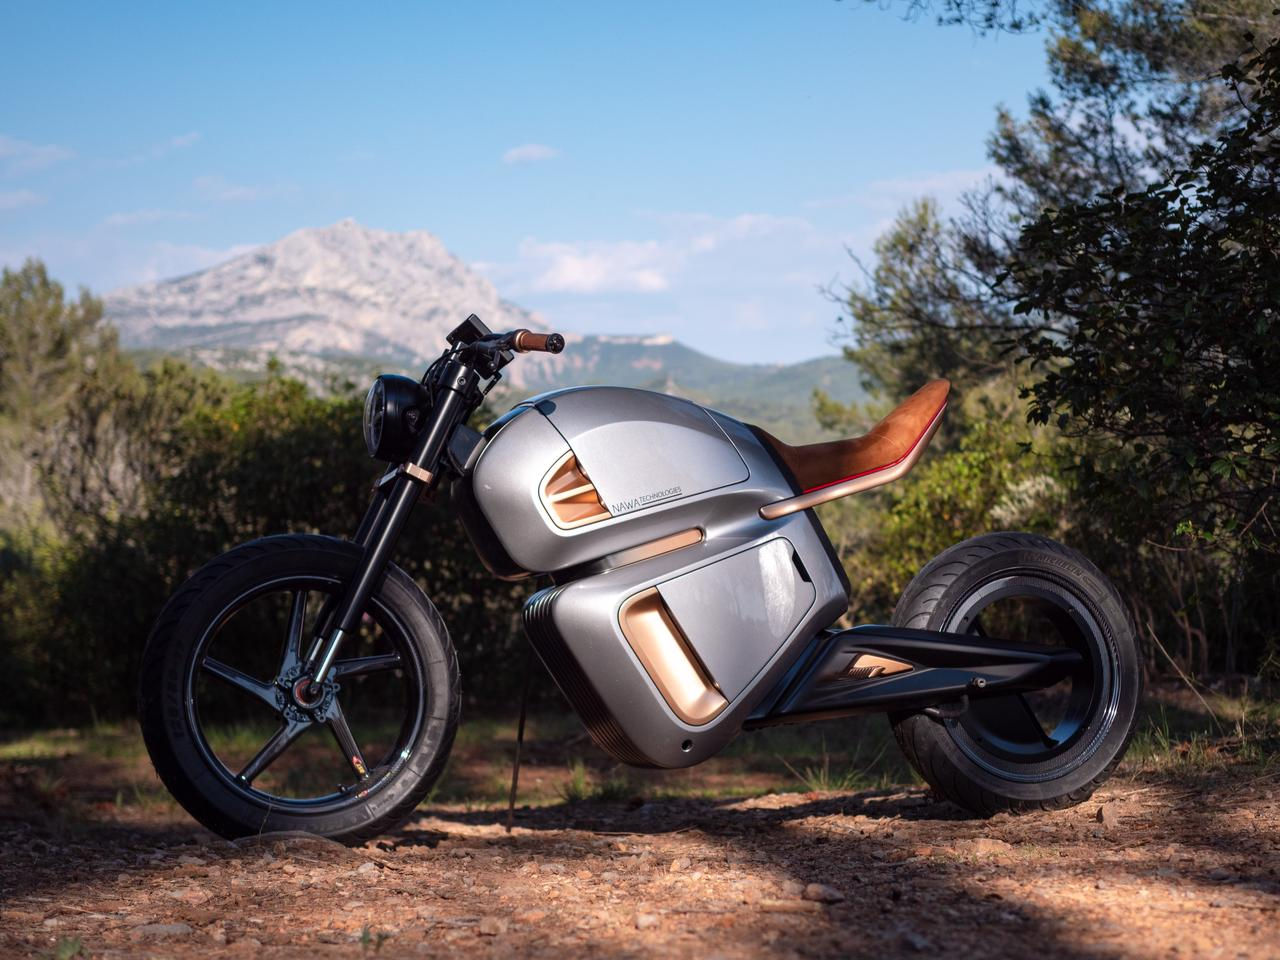 The hubless rear wheel almost goes unnoticed on such a radically futuristic design